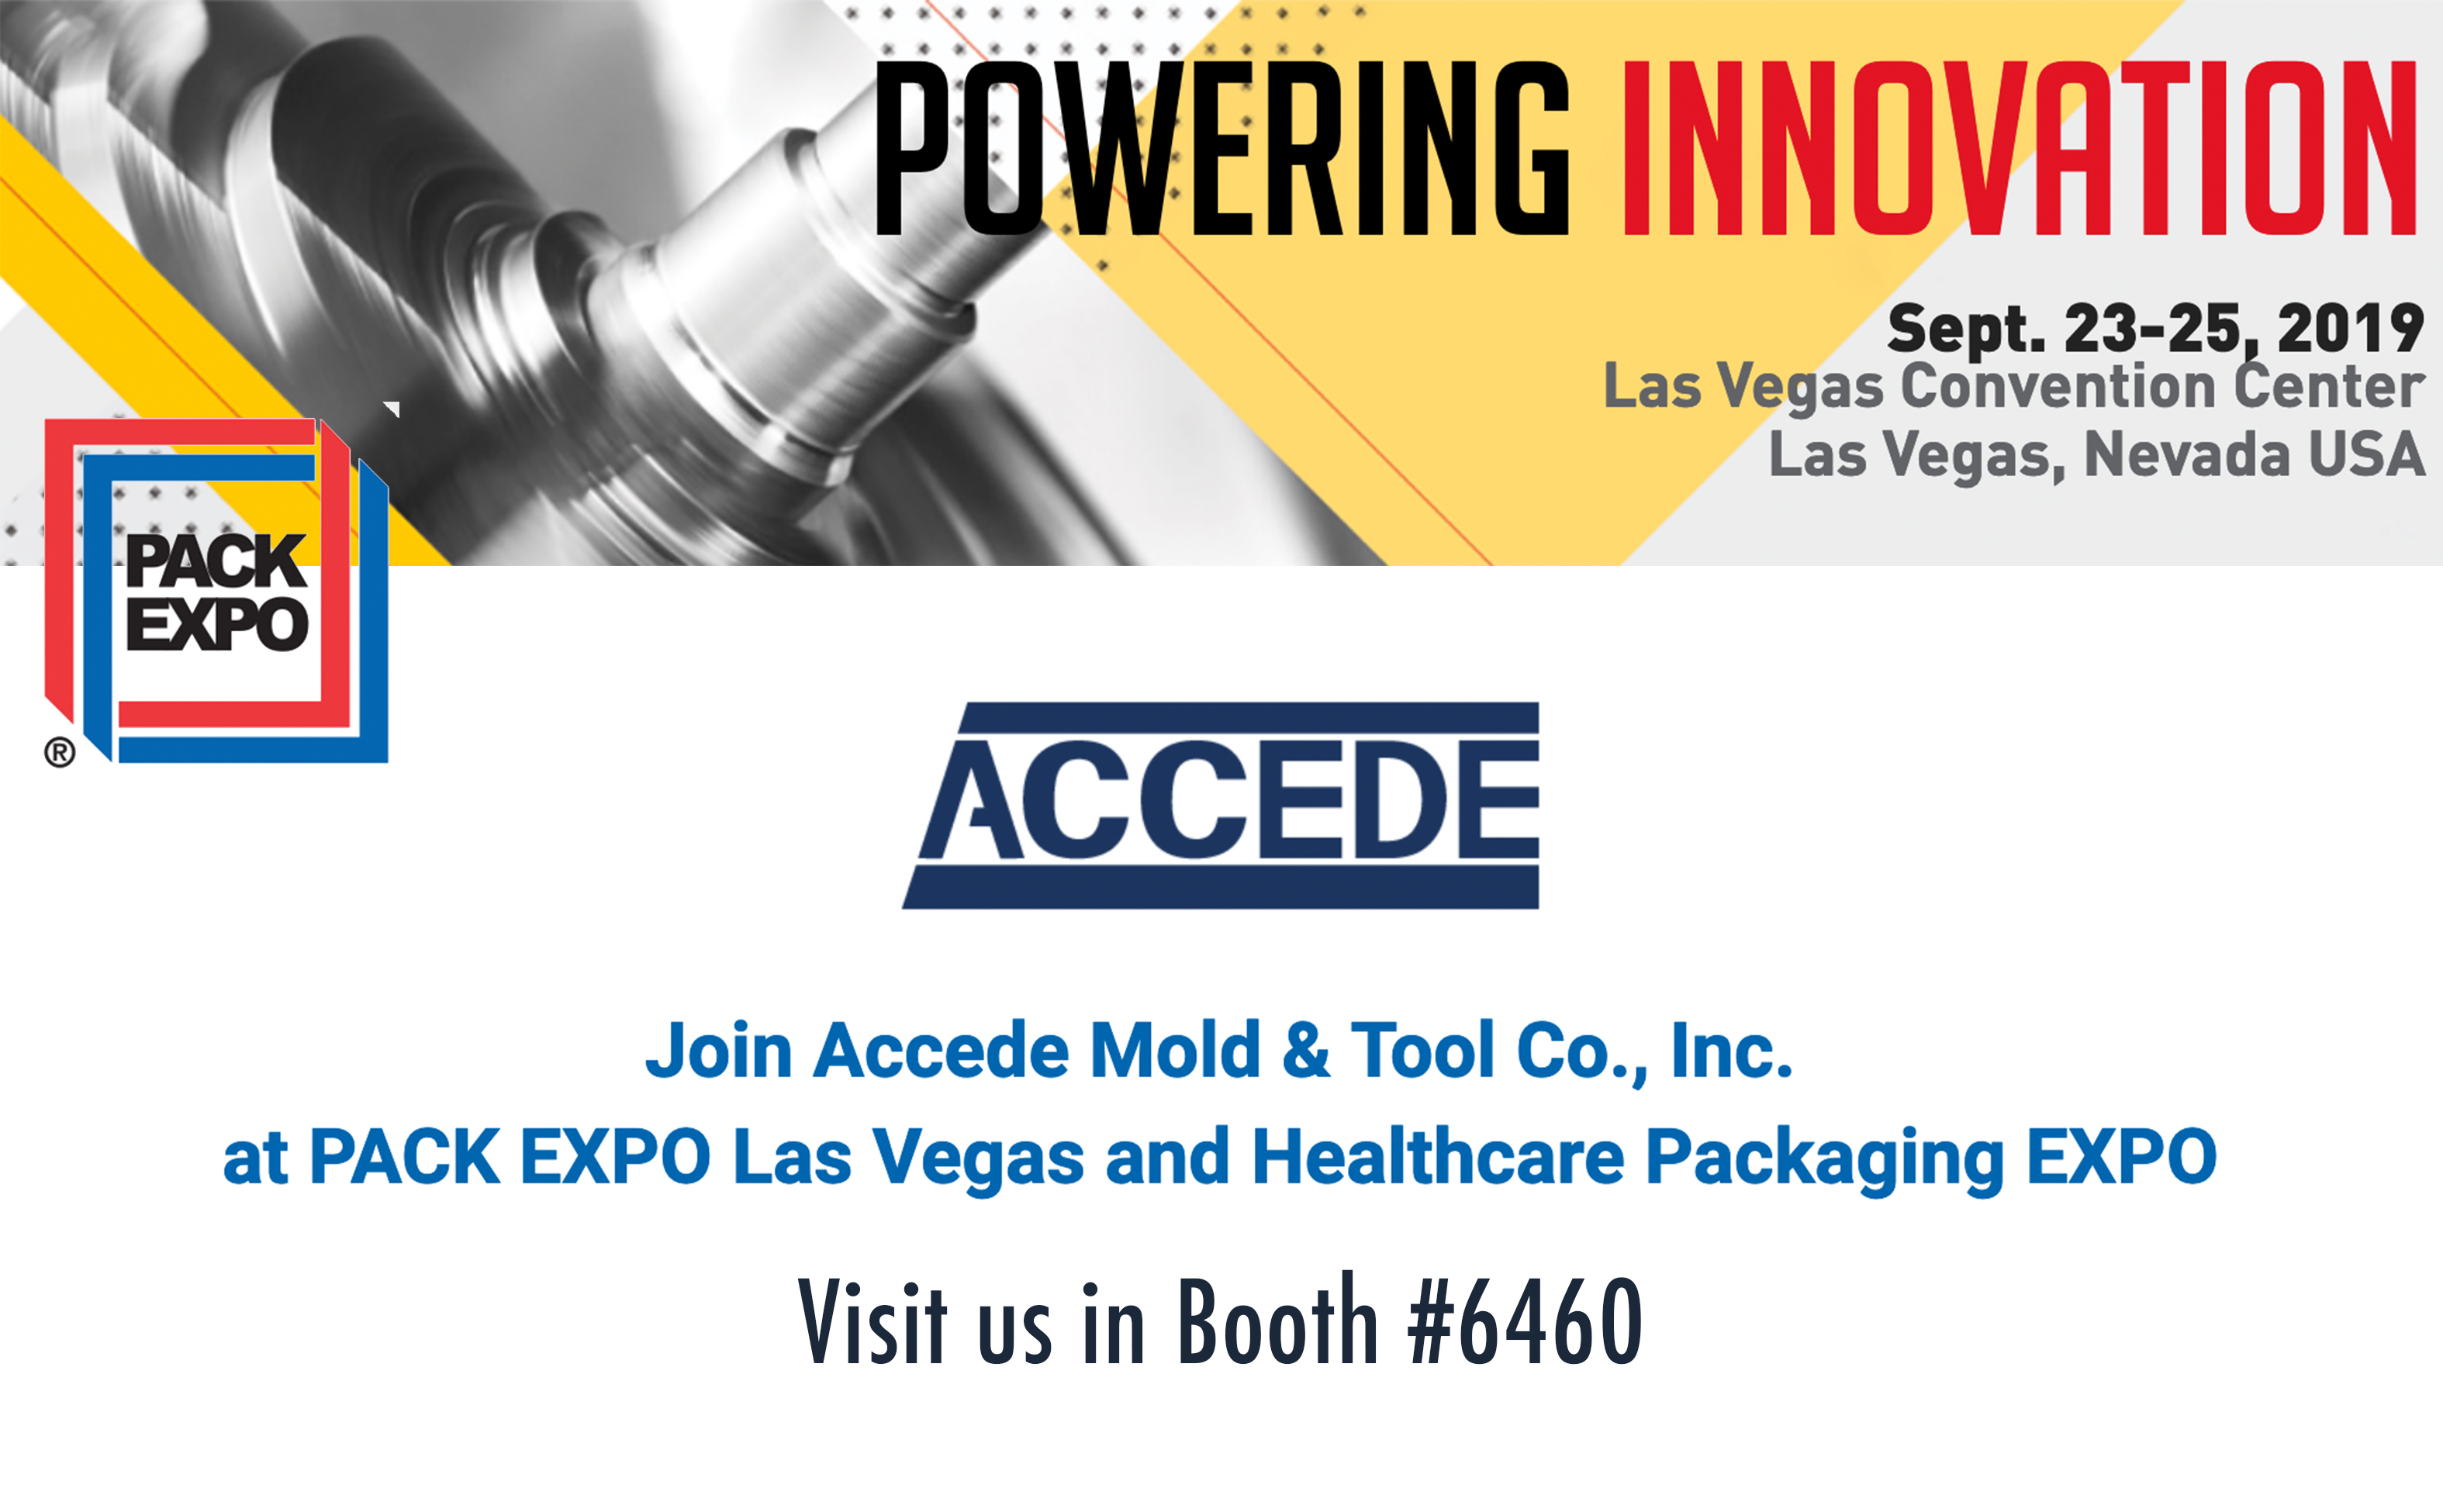 Join Accede Mold at PACK EXPO, 2019 - Accede Mold & Tool